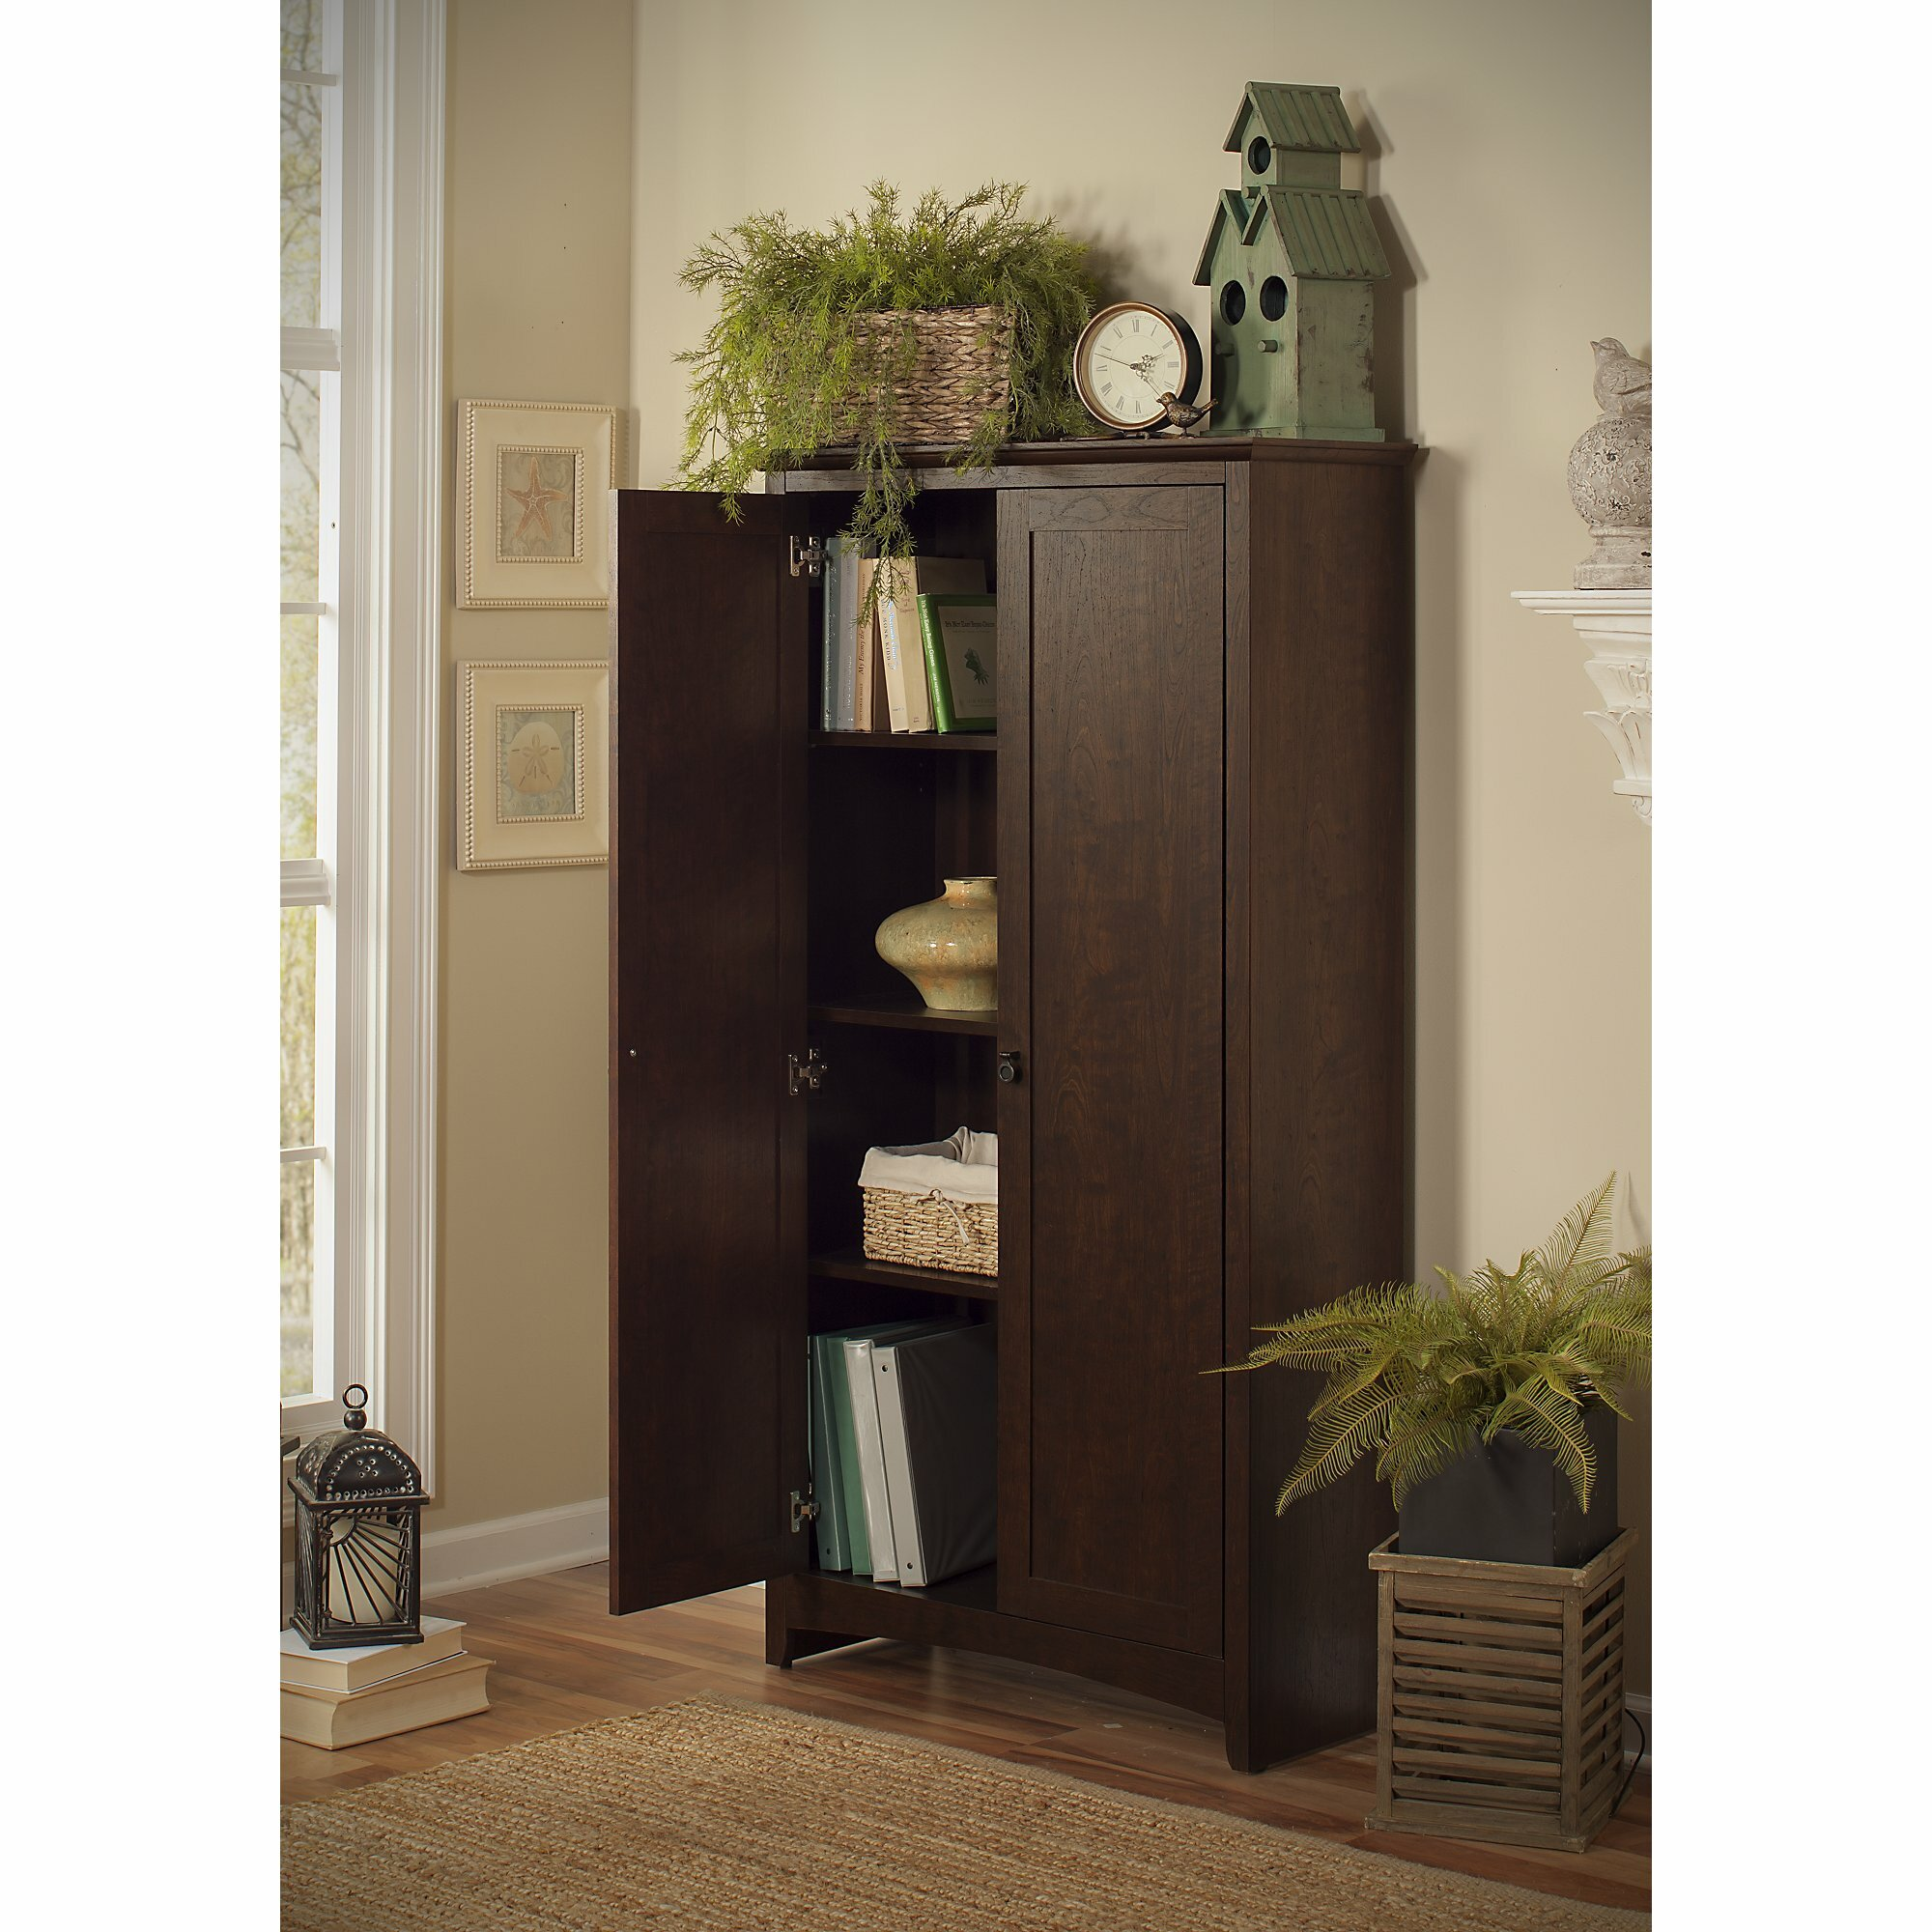 Darby home co tall storage cabinet with doors reviews for One day doors and closets reviews